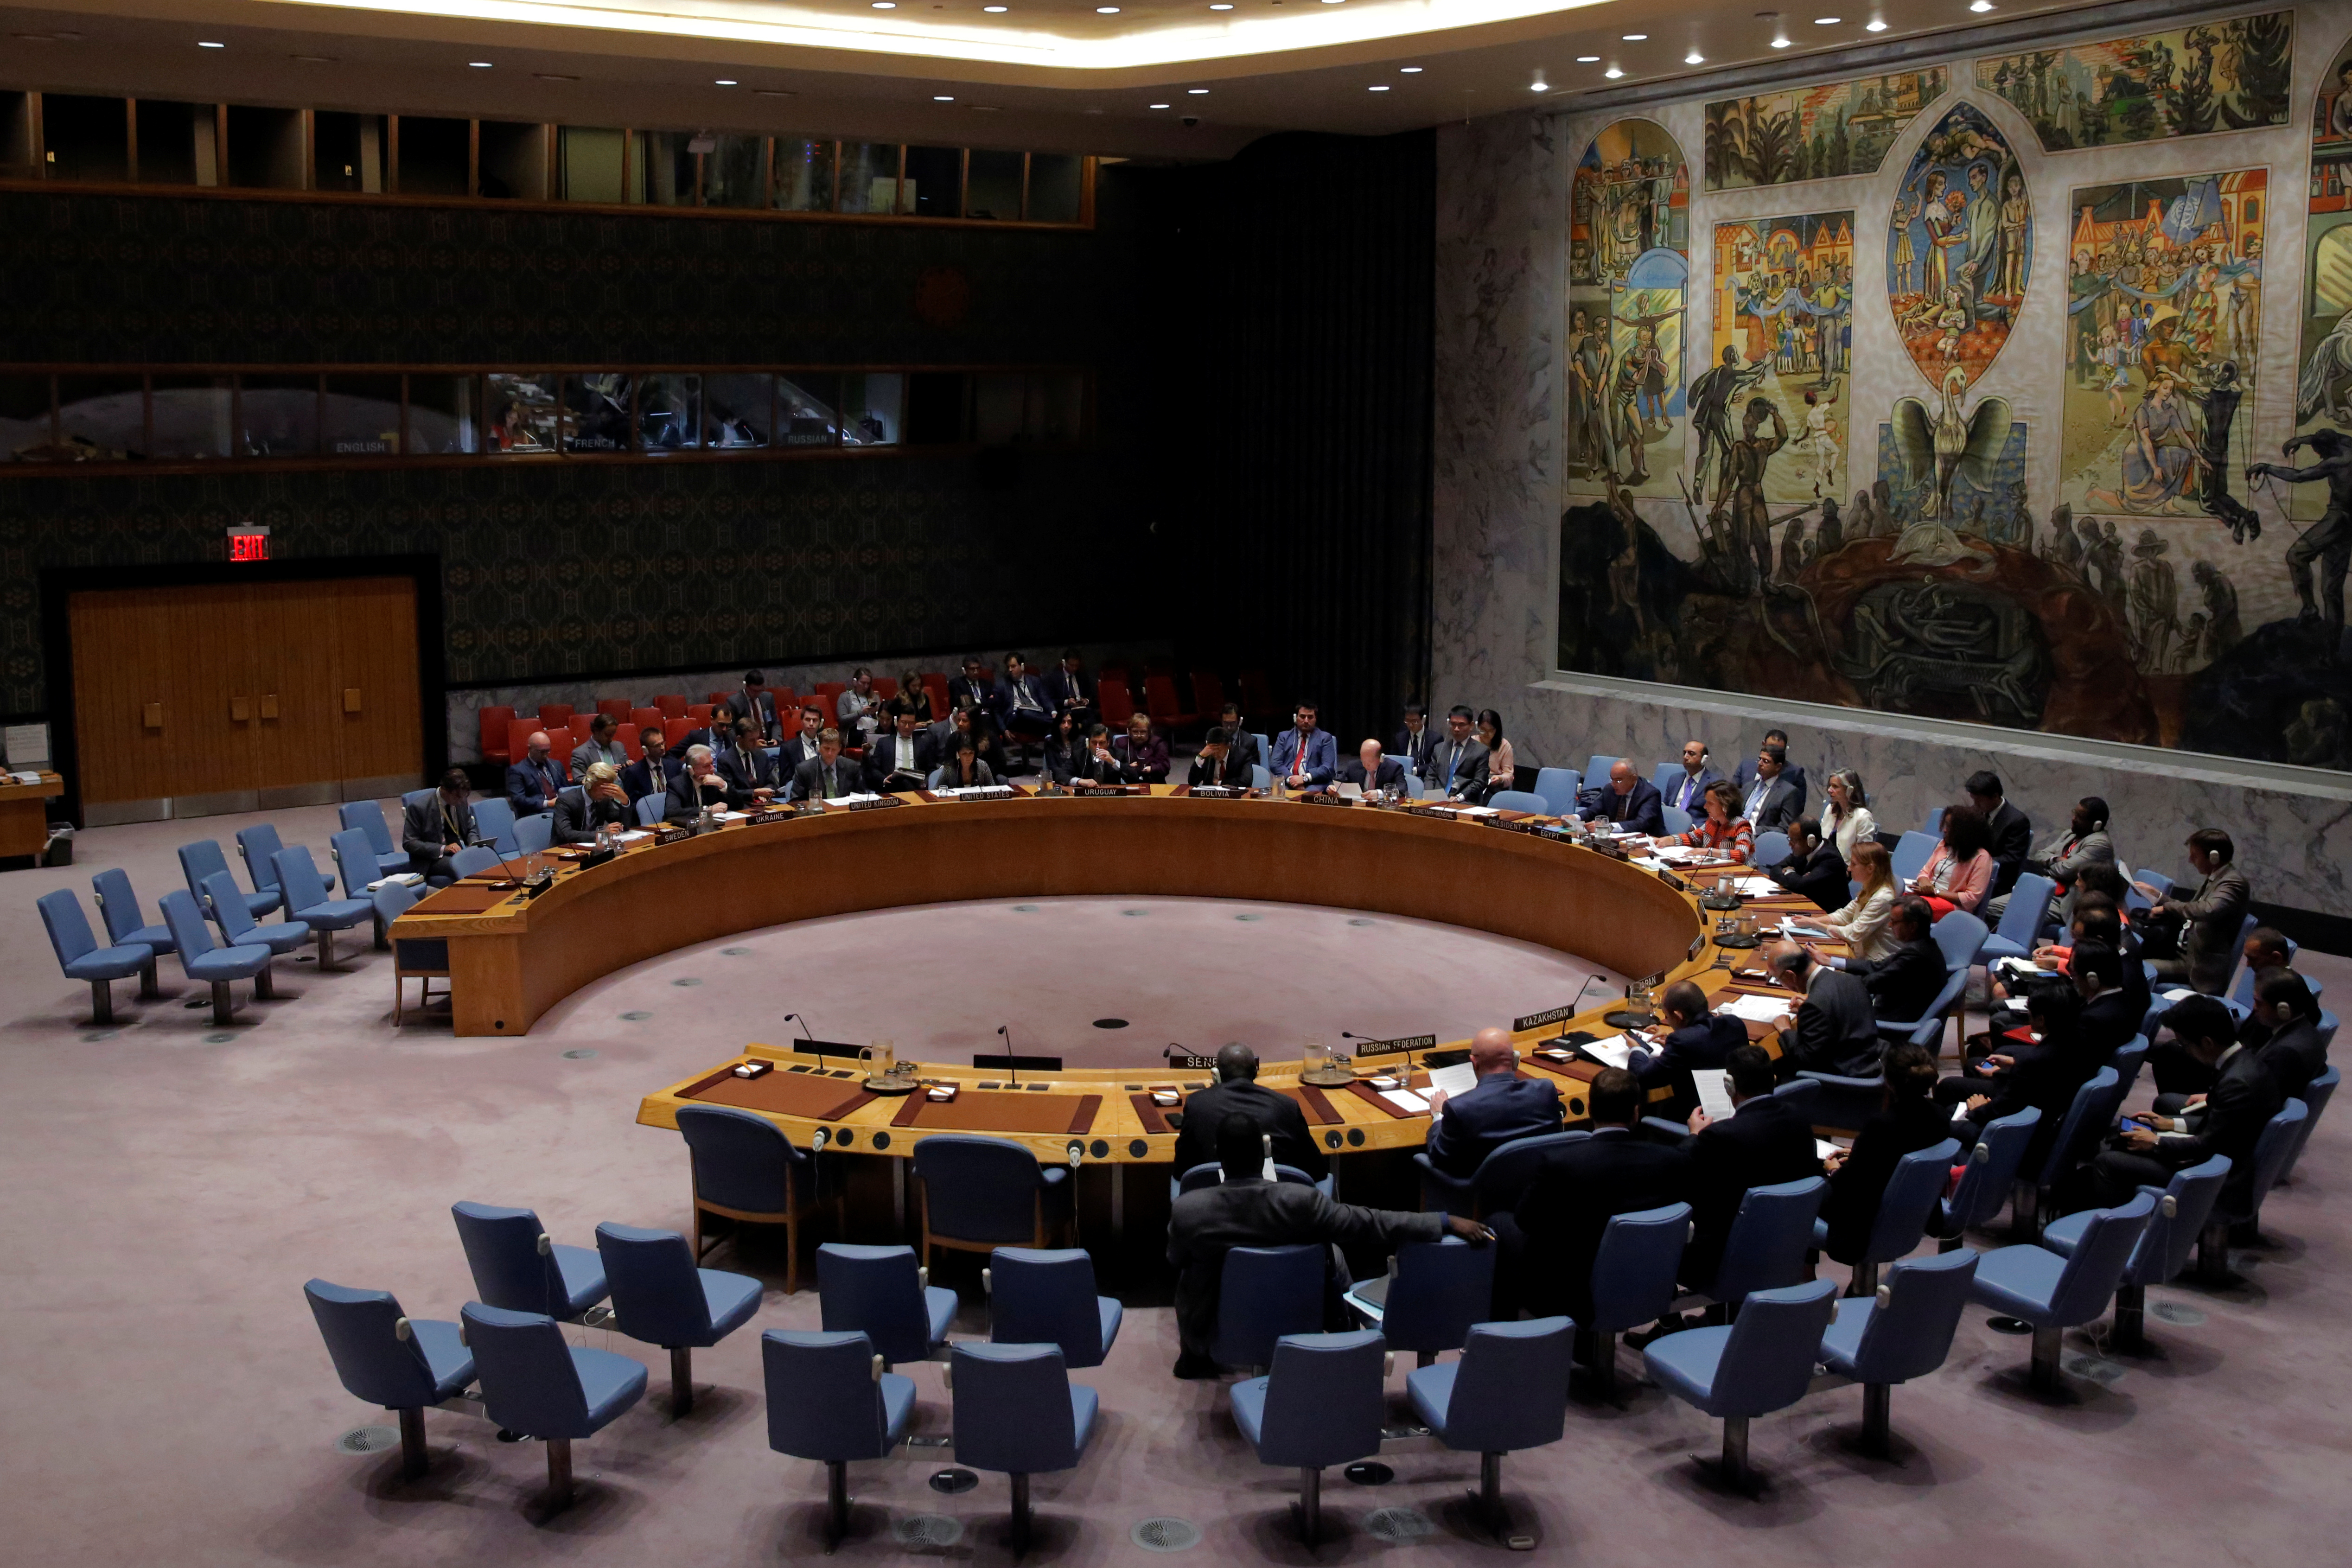 The United Nations Security Council sits to meet on North Korea after their latest missile test, at the U.N. headquarters in New York City on Aug. 29, 2017.  (REUTERS/Andrew Kelly)